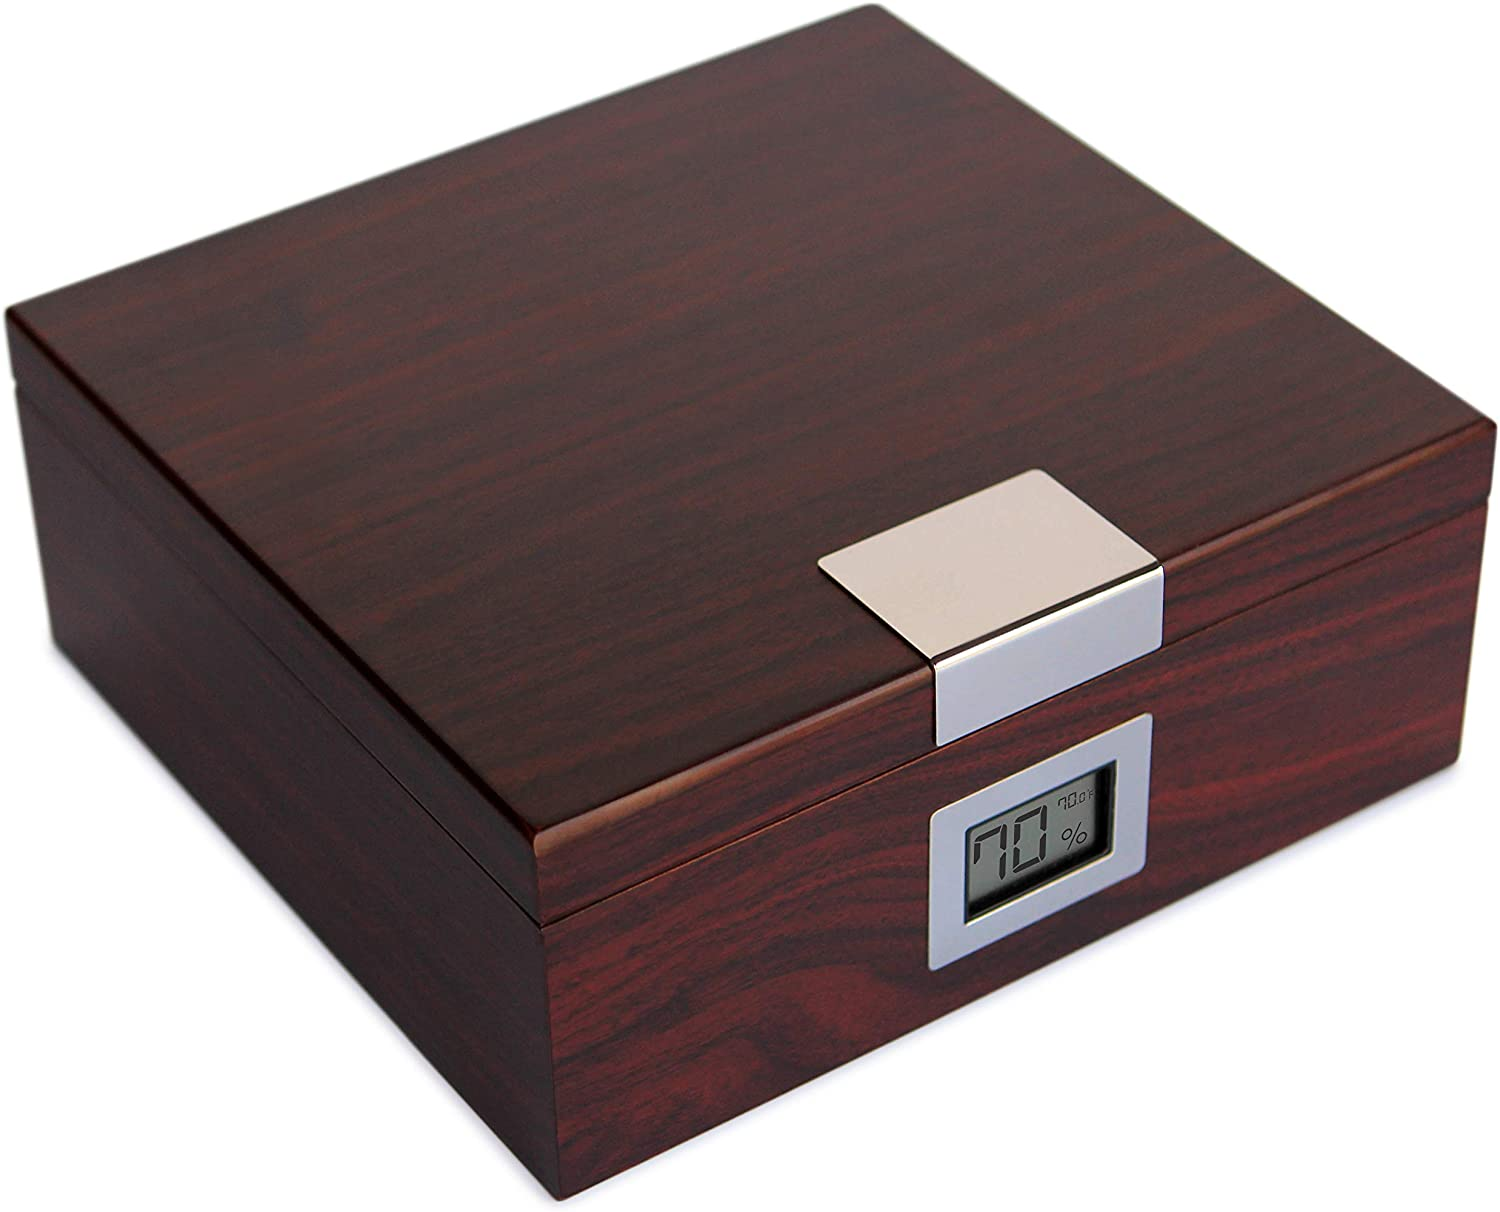 Handcrafted Cherry Finish Cedar Humidor with Front Digital Hygrometer and Humidifier Gel - Holds (25-50 Cigars) by Case Elegance